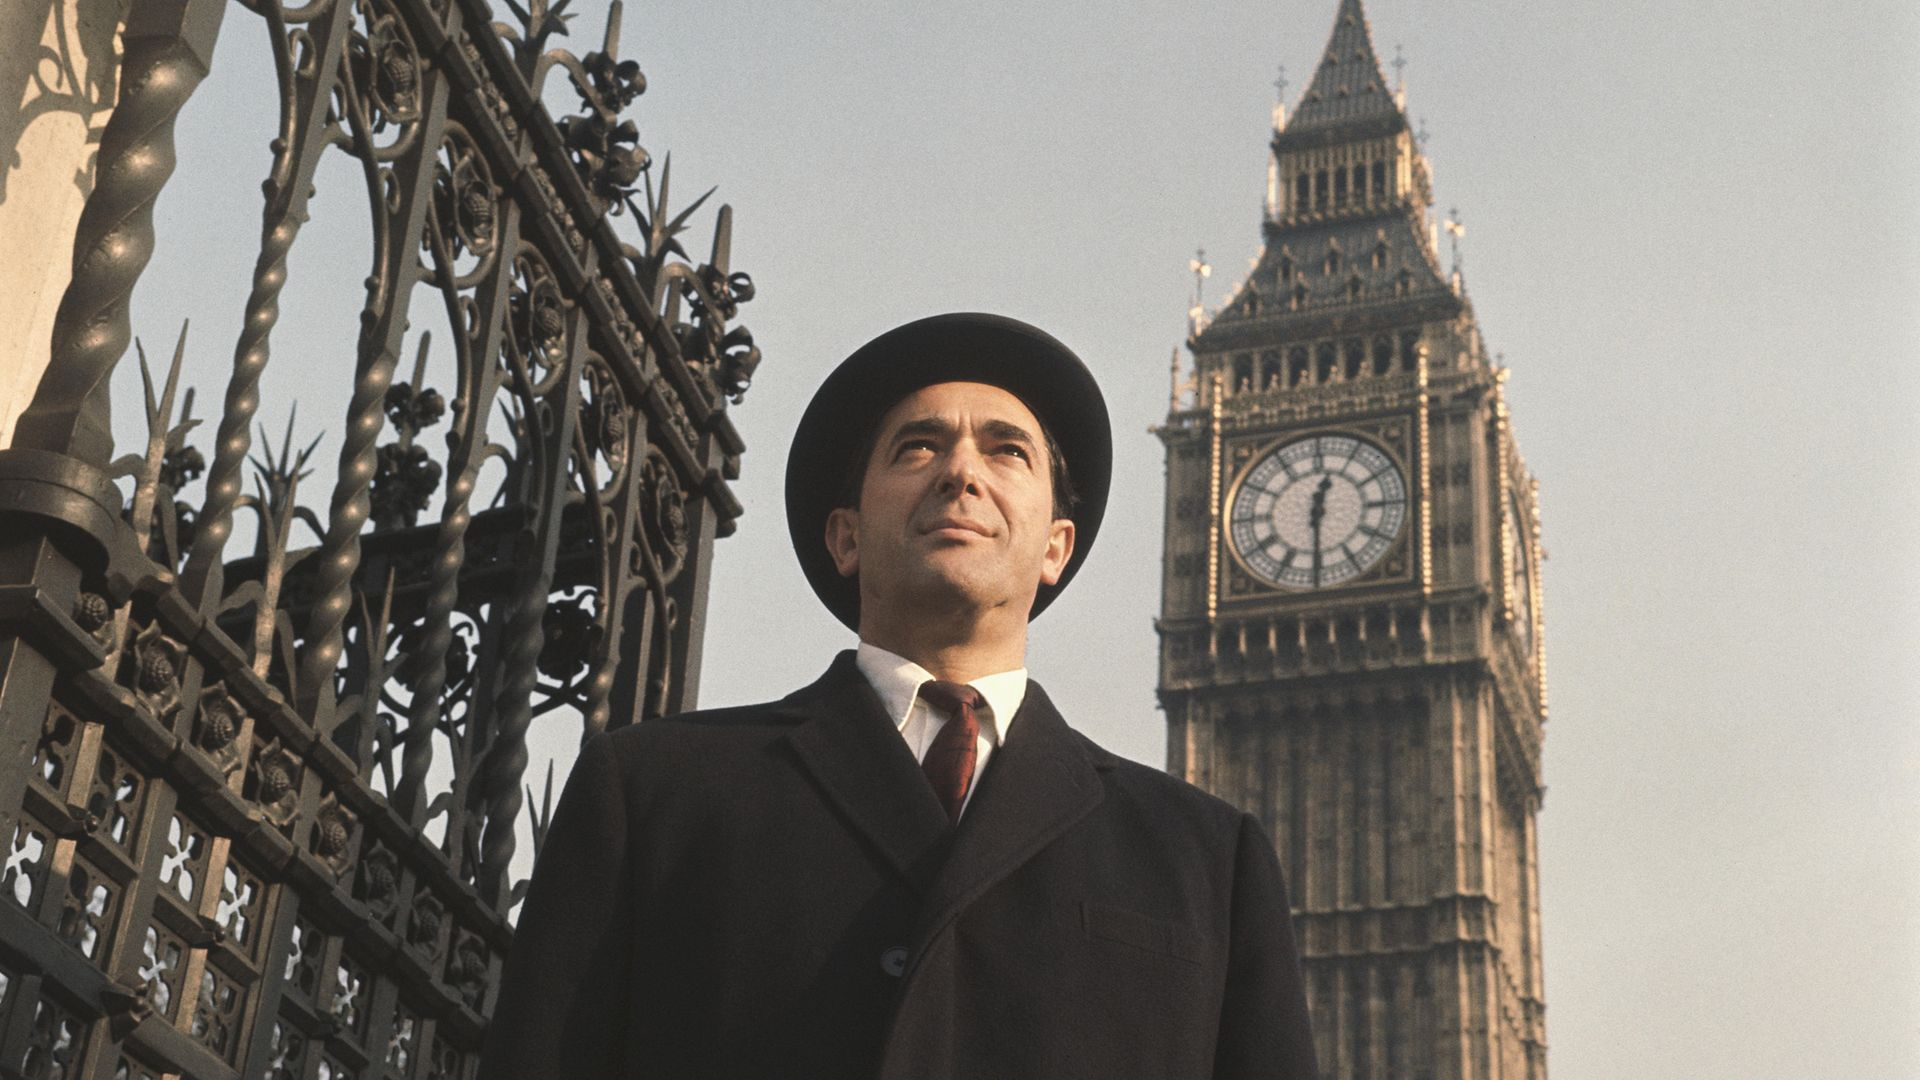 Robert Maxwell arrives at the Houses of Parliament to take up his seat after being elected MP for Buckingham in 1964 - Credit: Getty Images